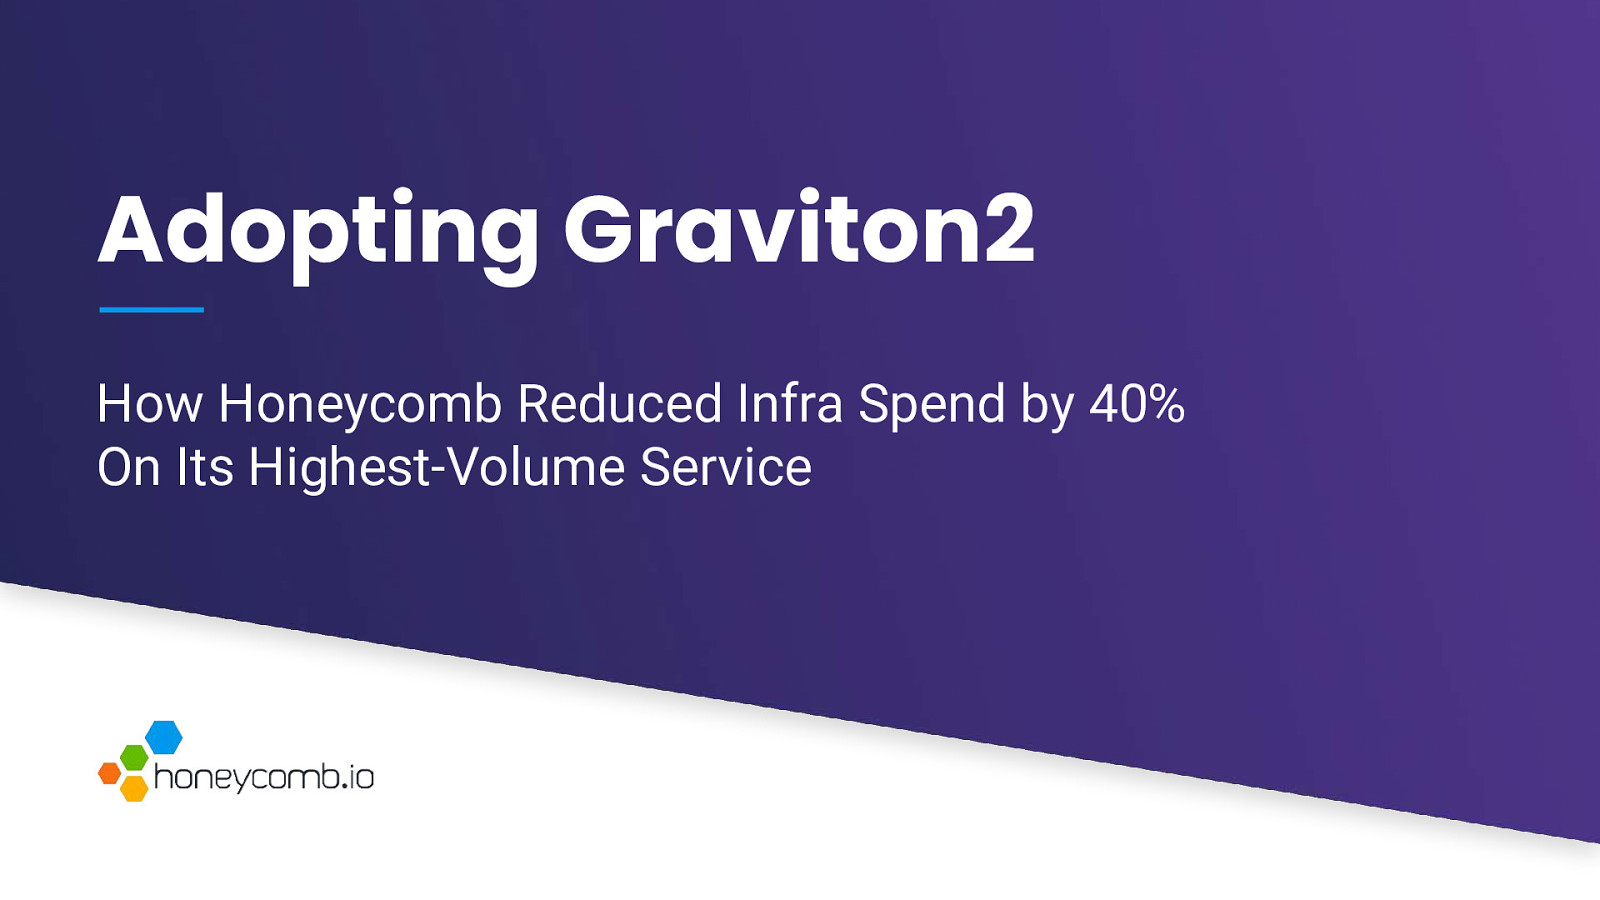 Adopting Graviton2: How Honeycomb Reduced Infra Spend by 40% on Our Highest-Volume Service